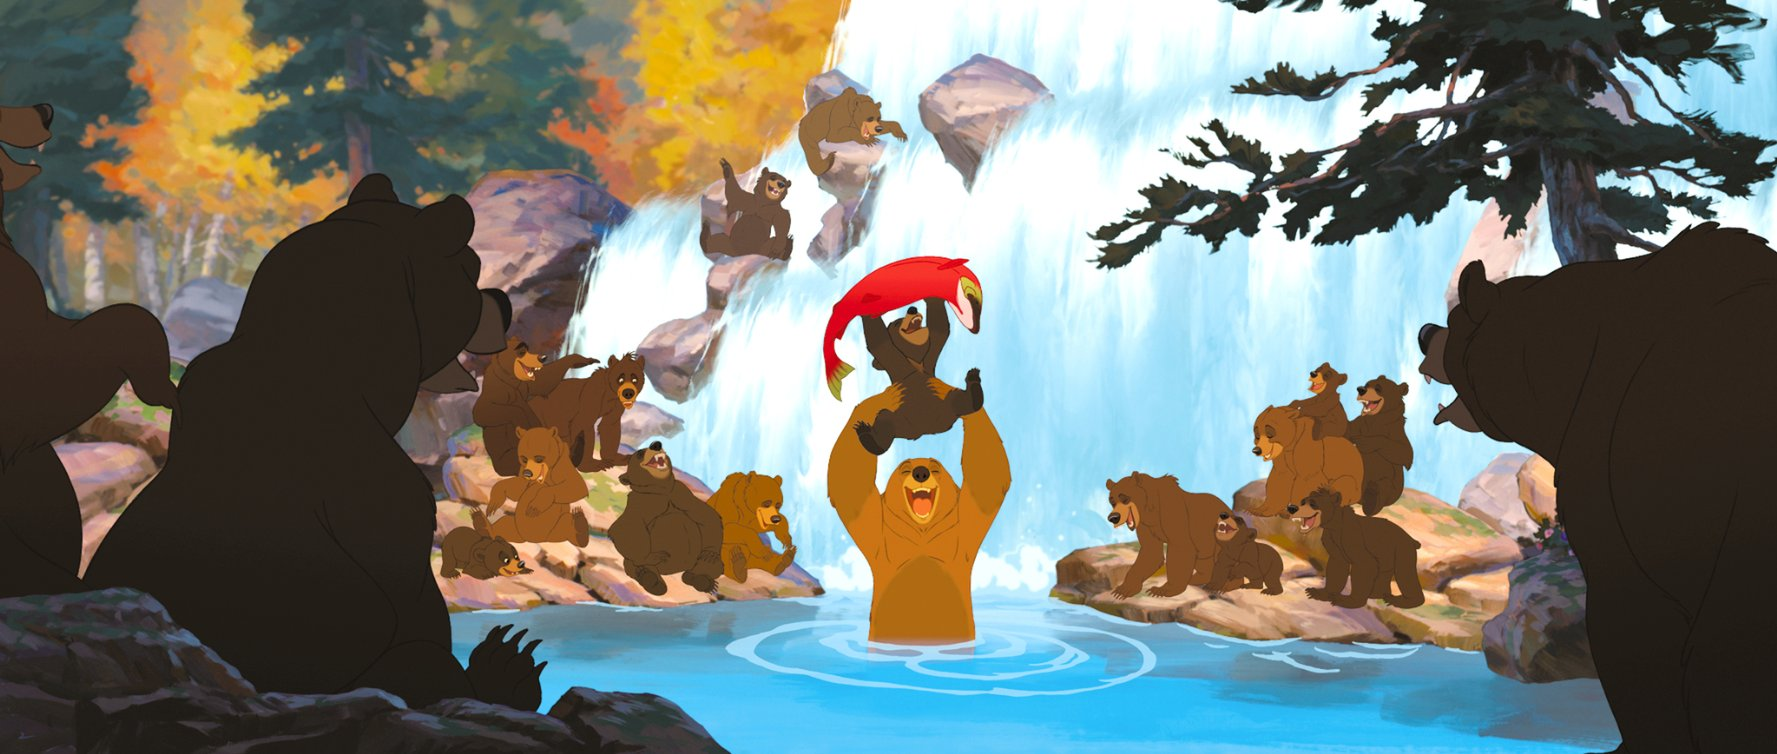 Brother Bear 2003 Full Movie Watch In Hd Online For Free -4749